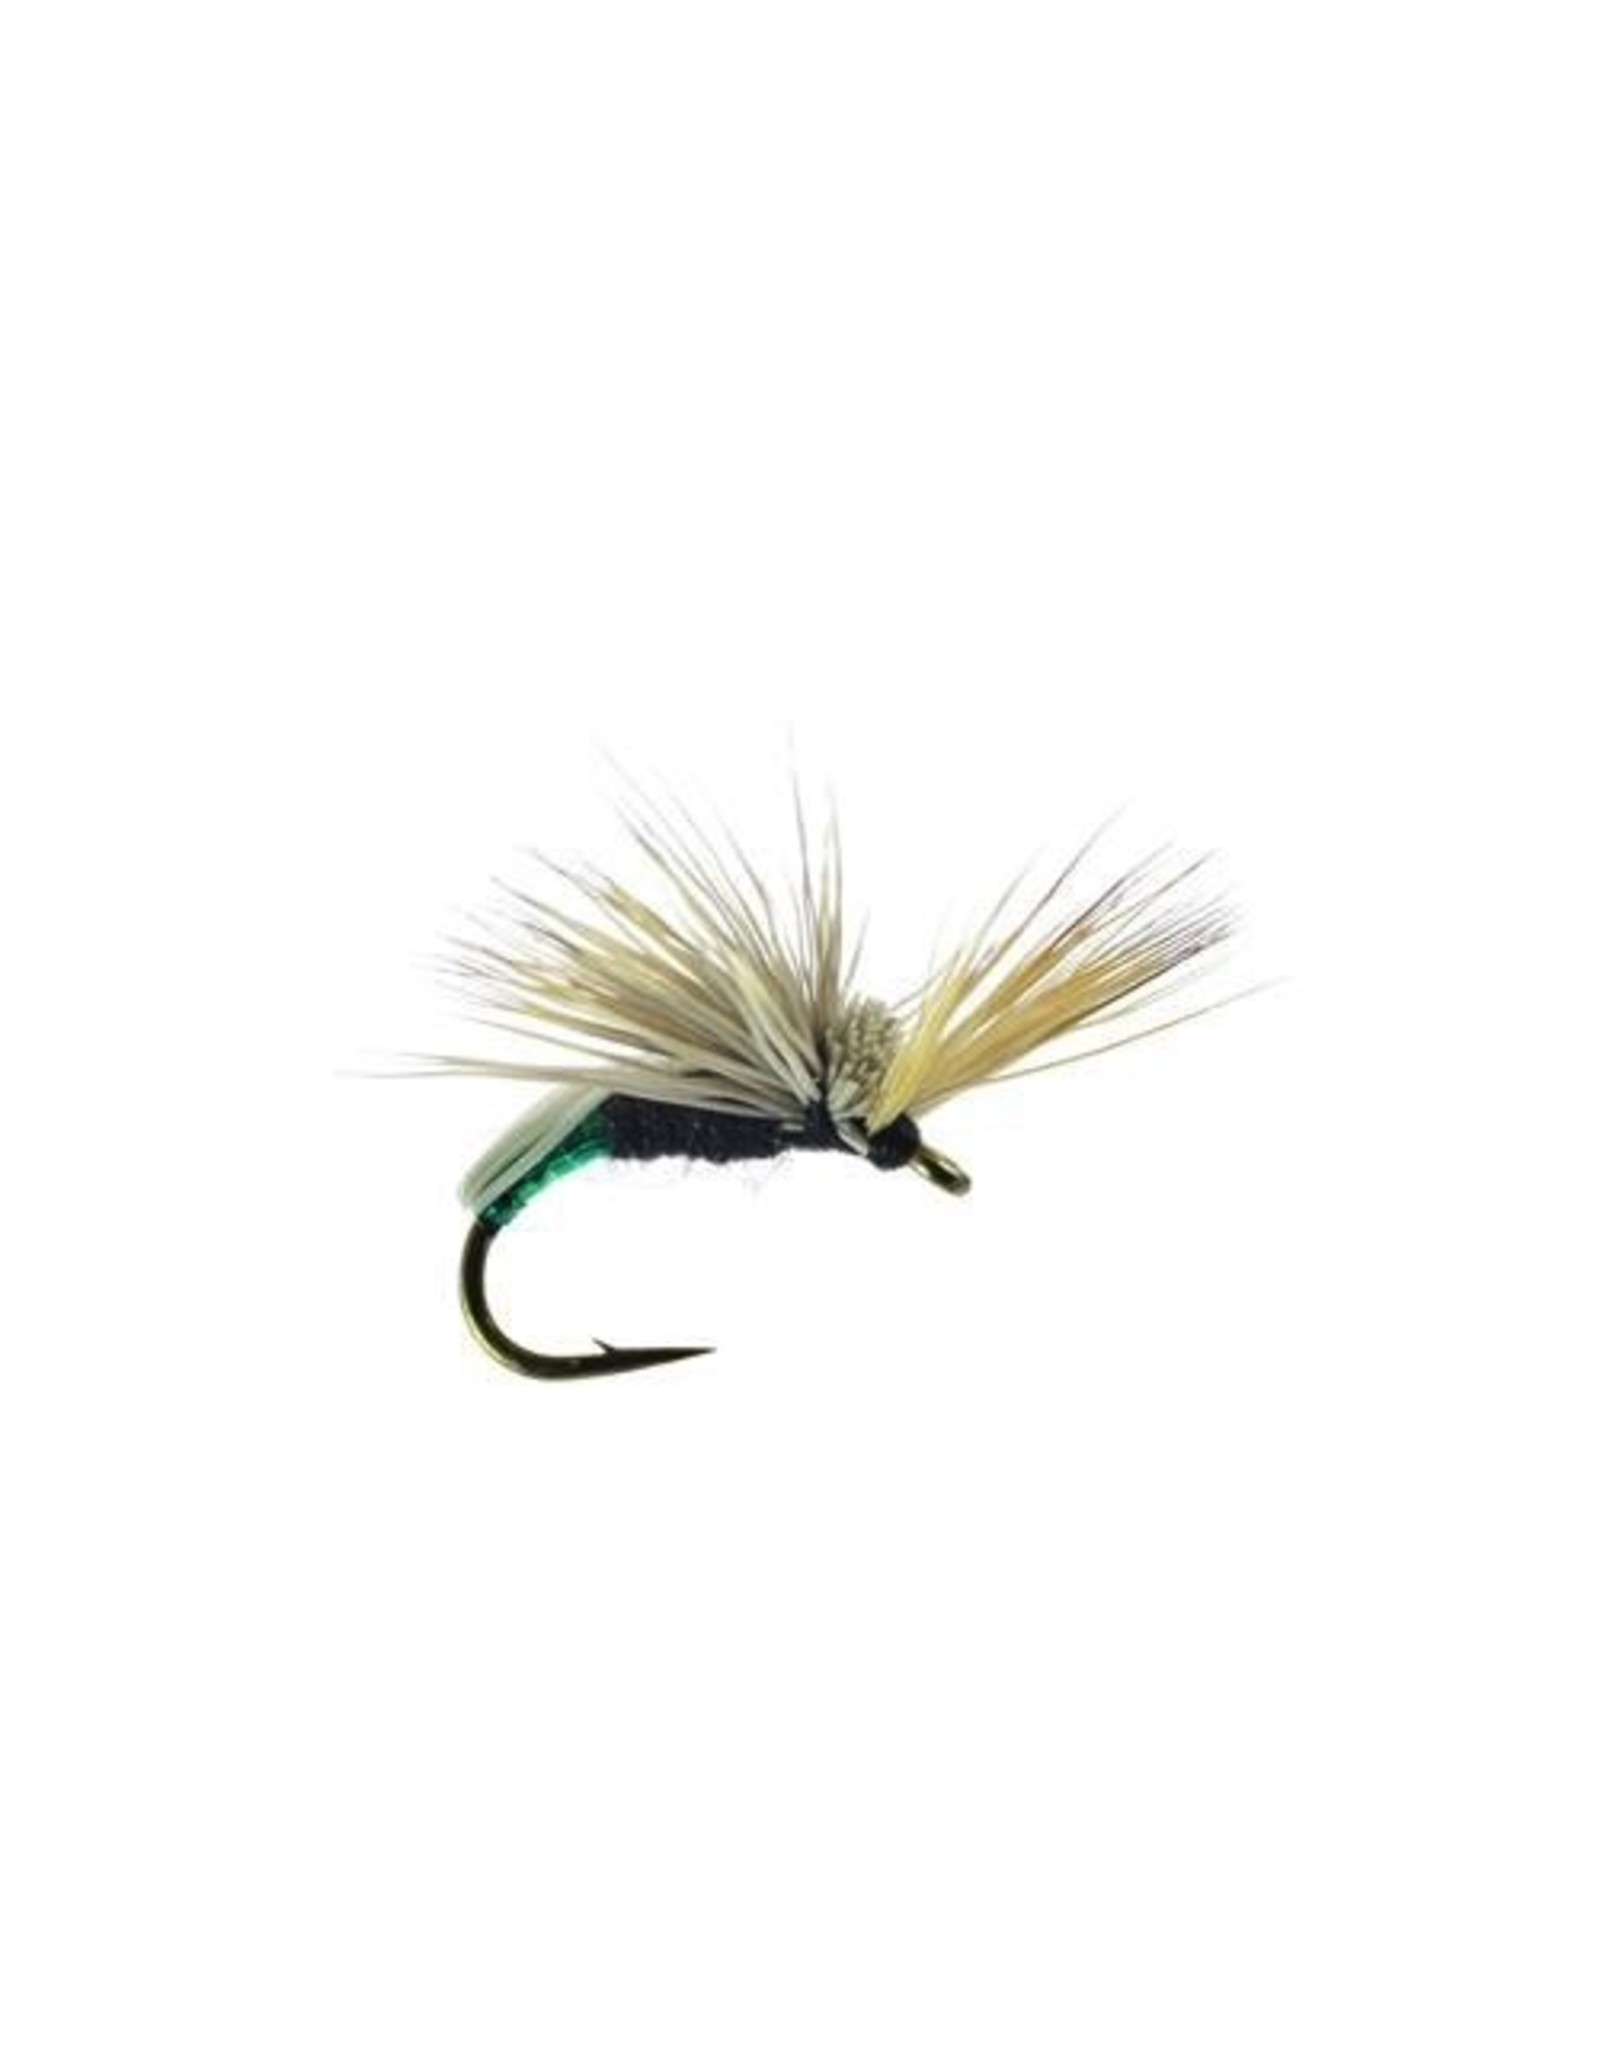 Umpqua Screaming Banshee (3 pack)